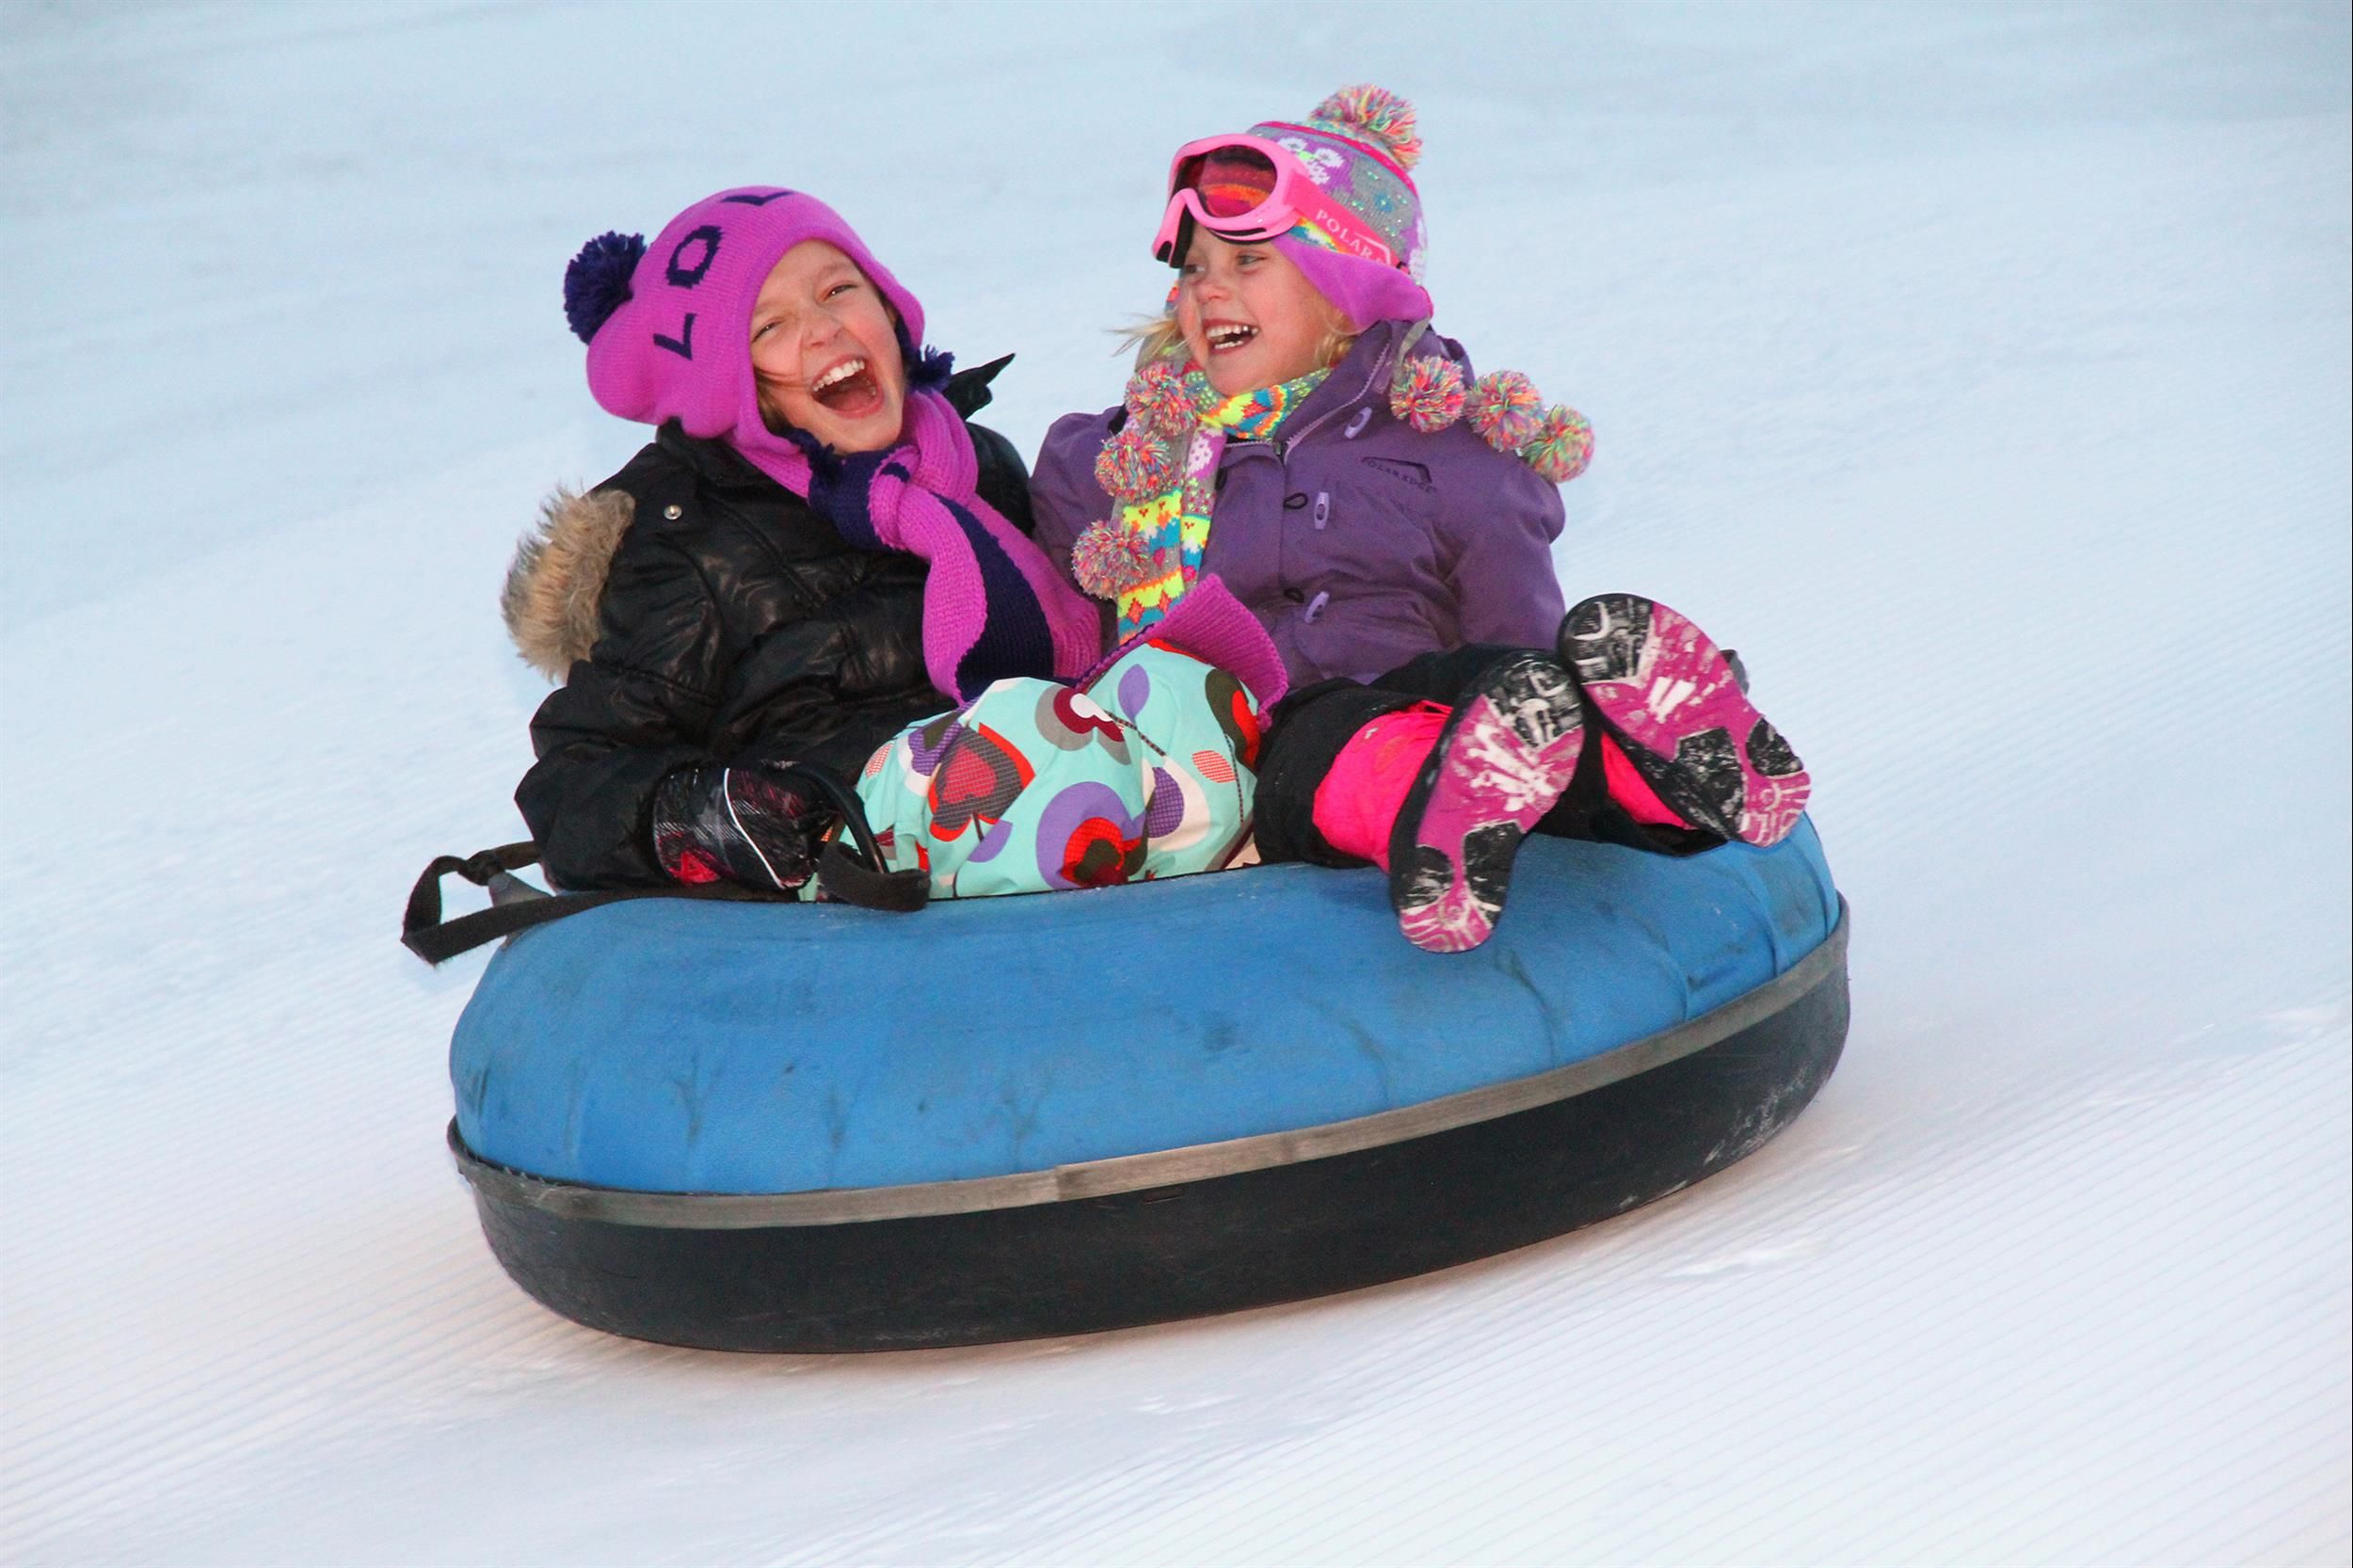 winter sports tubing girls